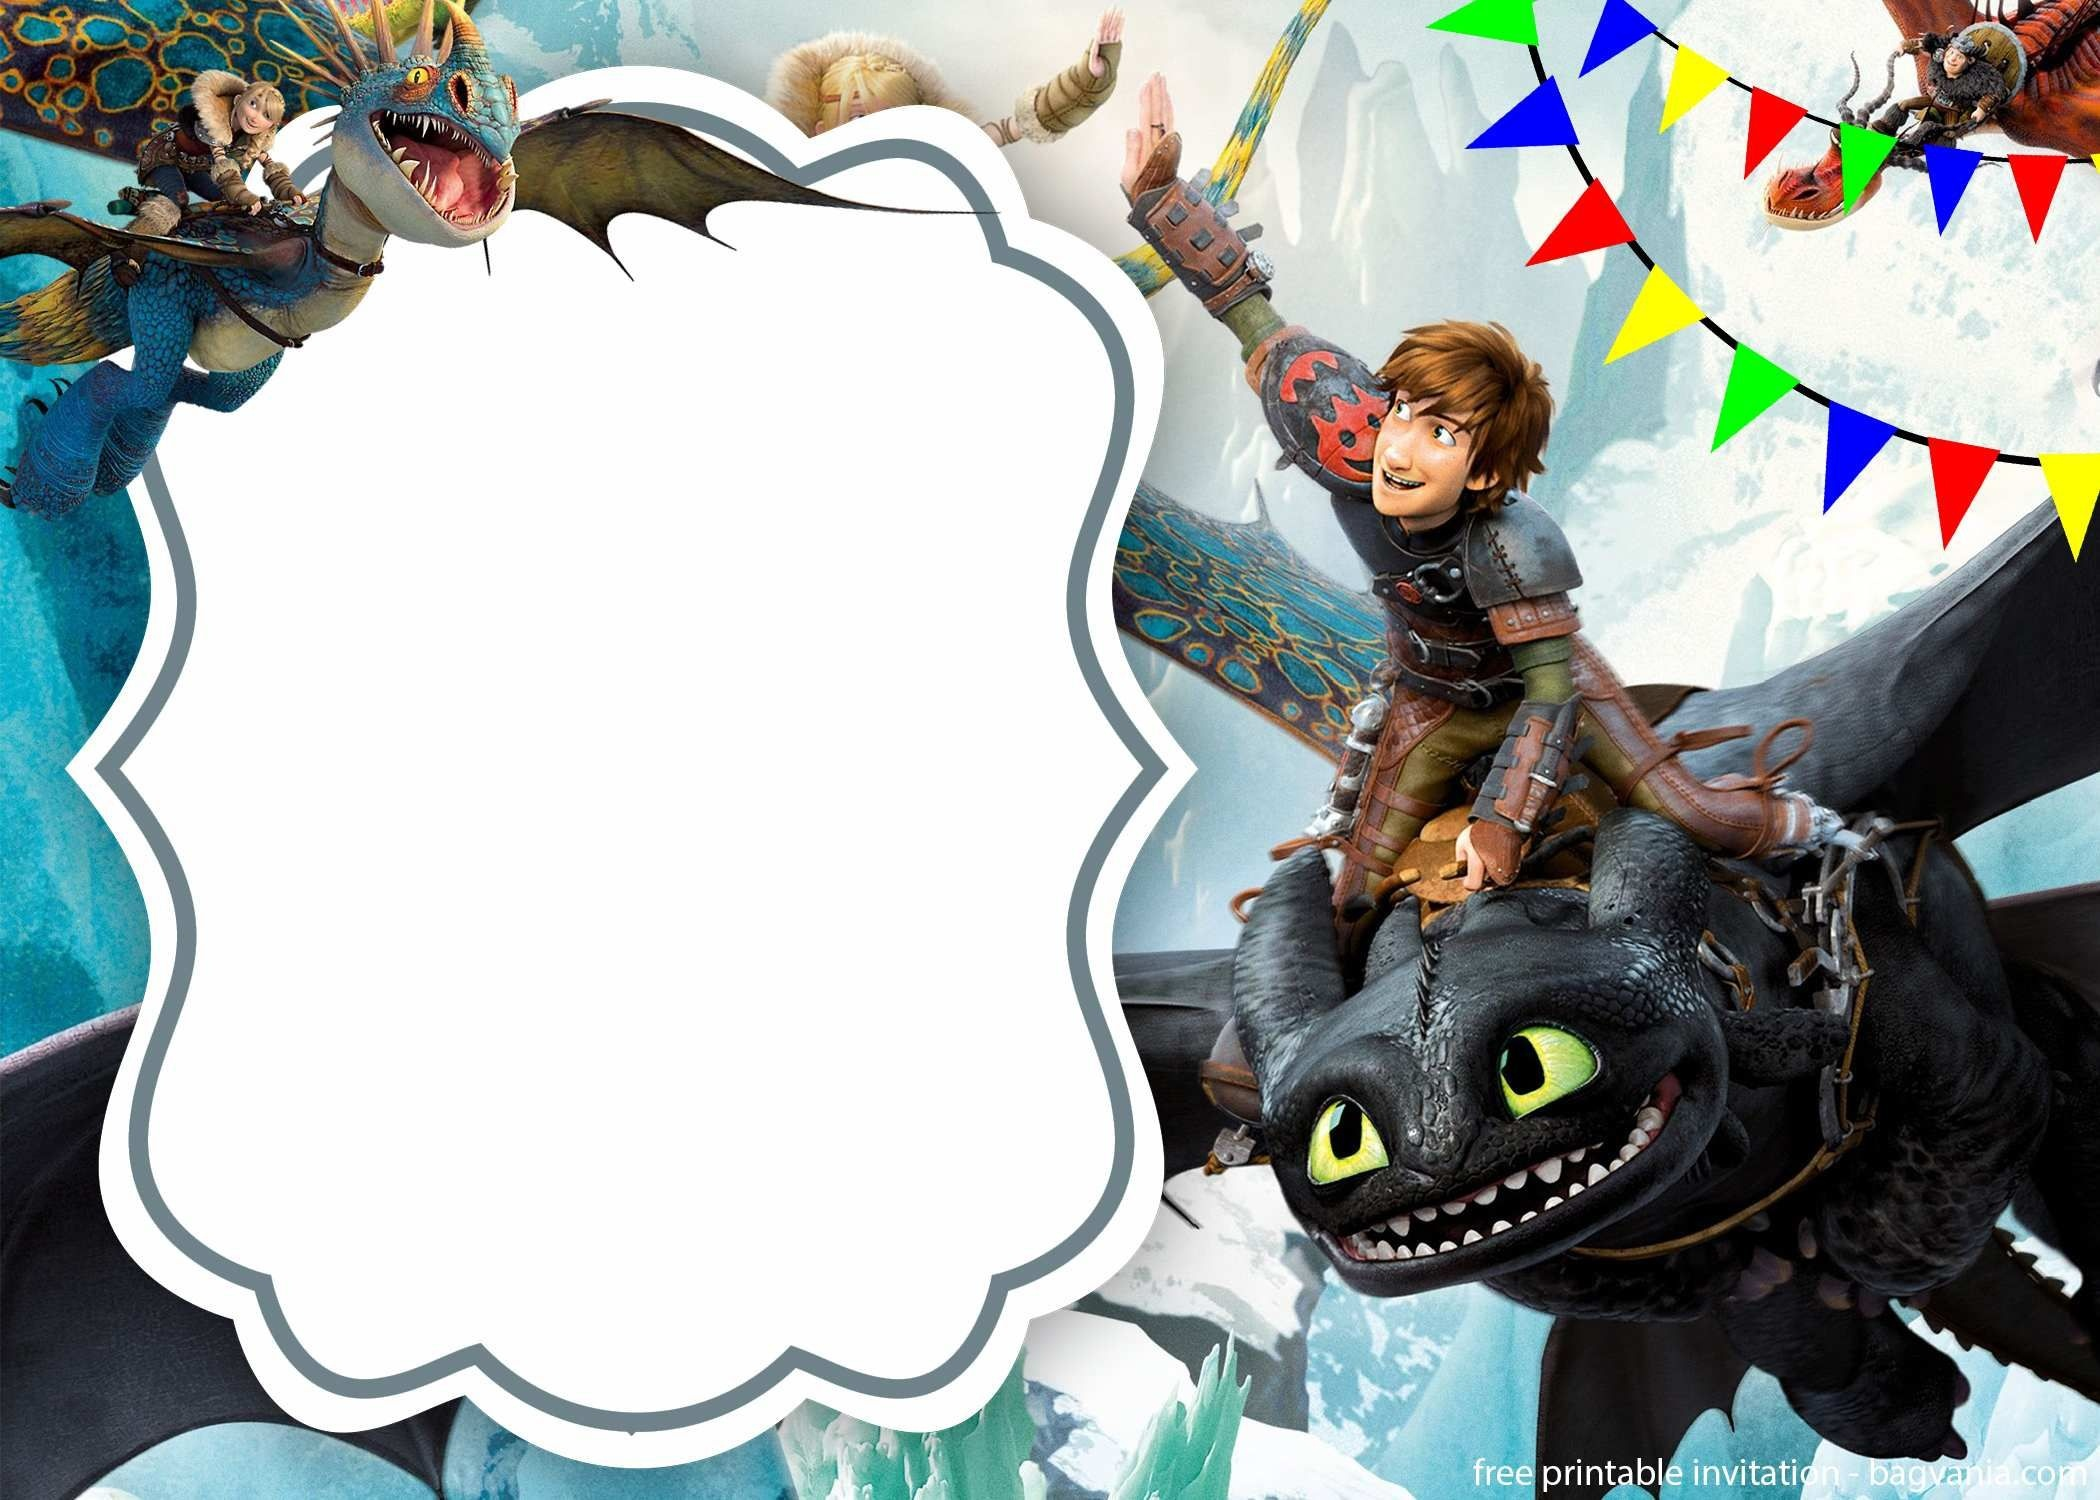 Free Download How To Train Your Dragon Invitation   Bagvania - How To Train Your Dragon Birthday Invitations Printable Free